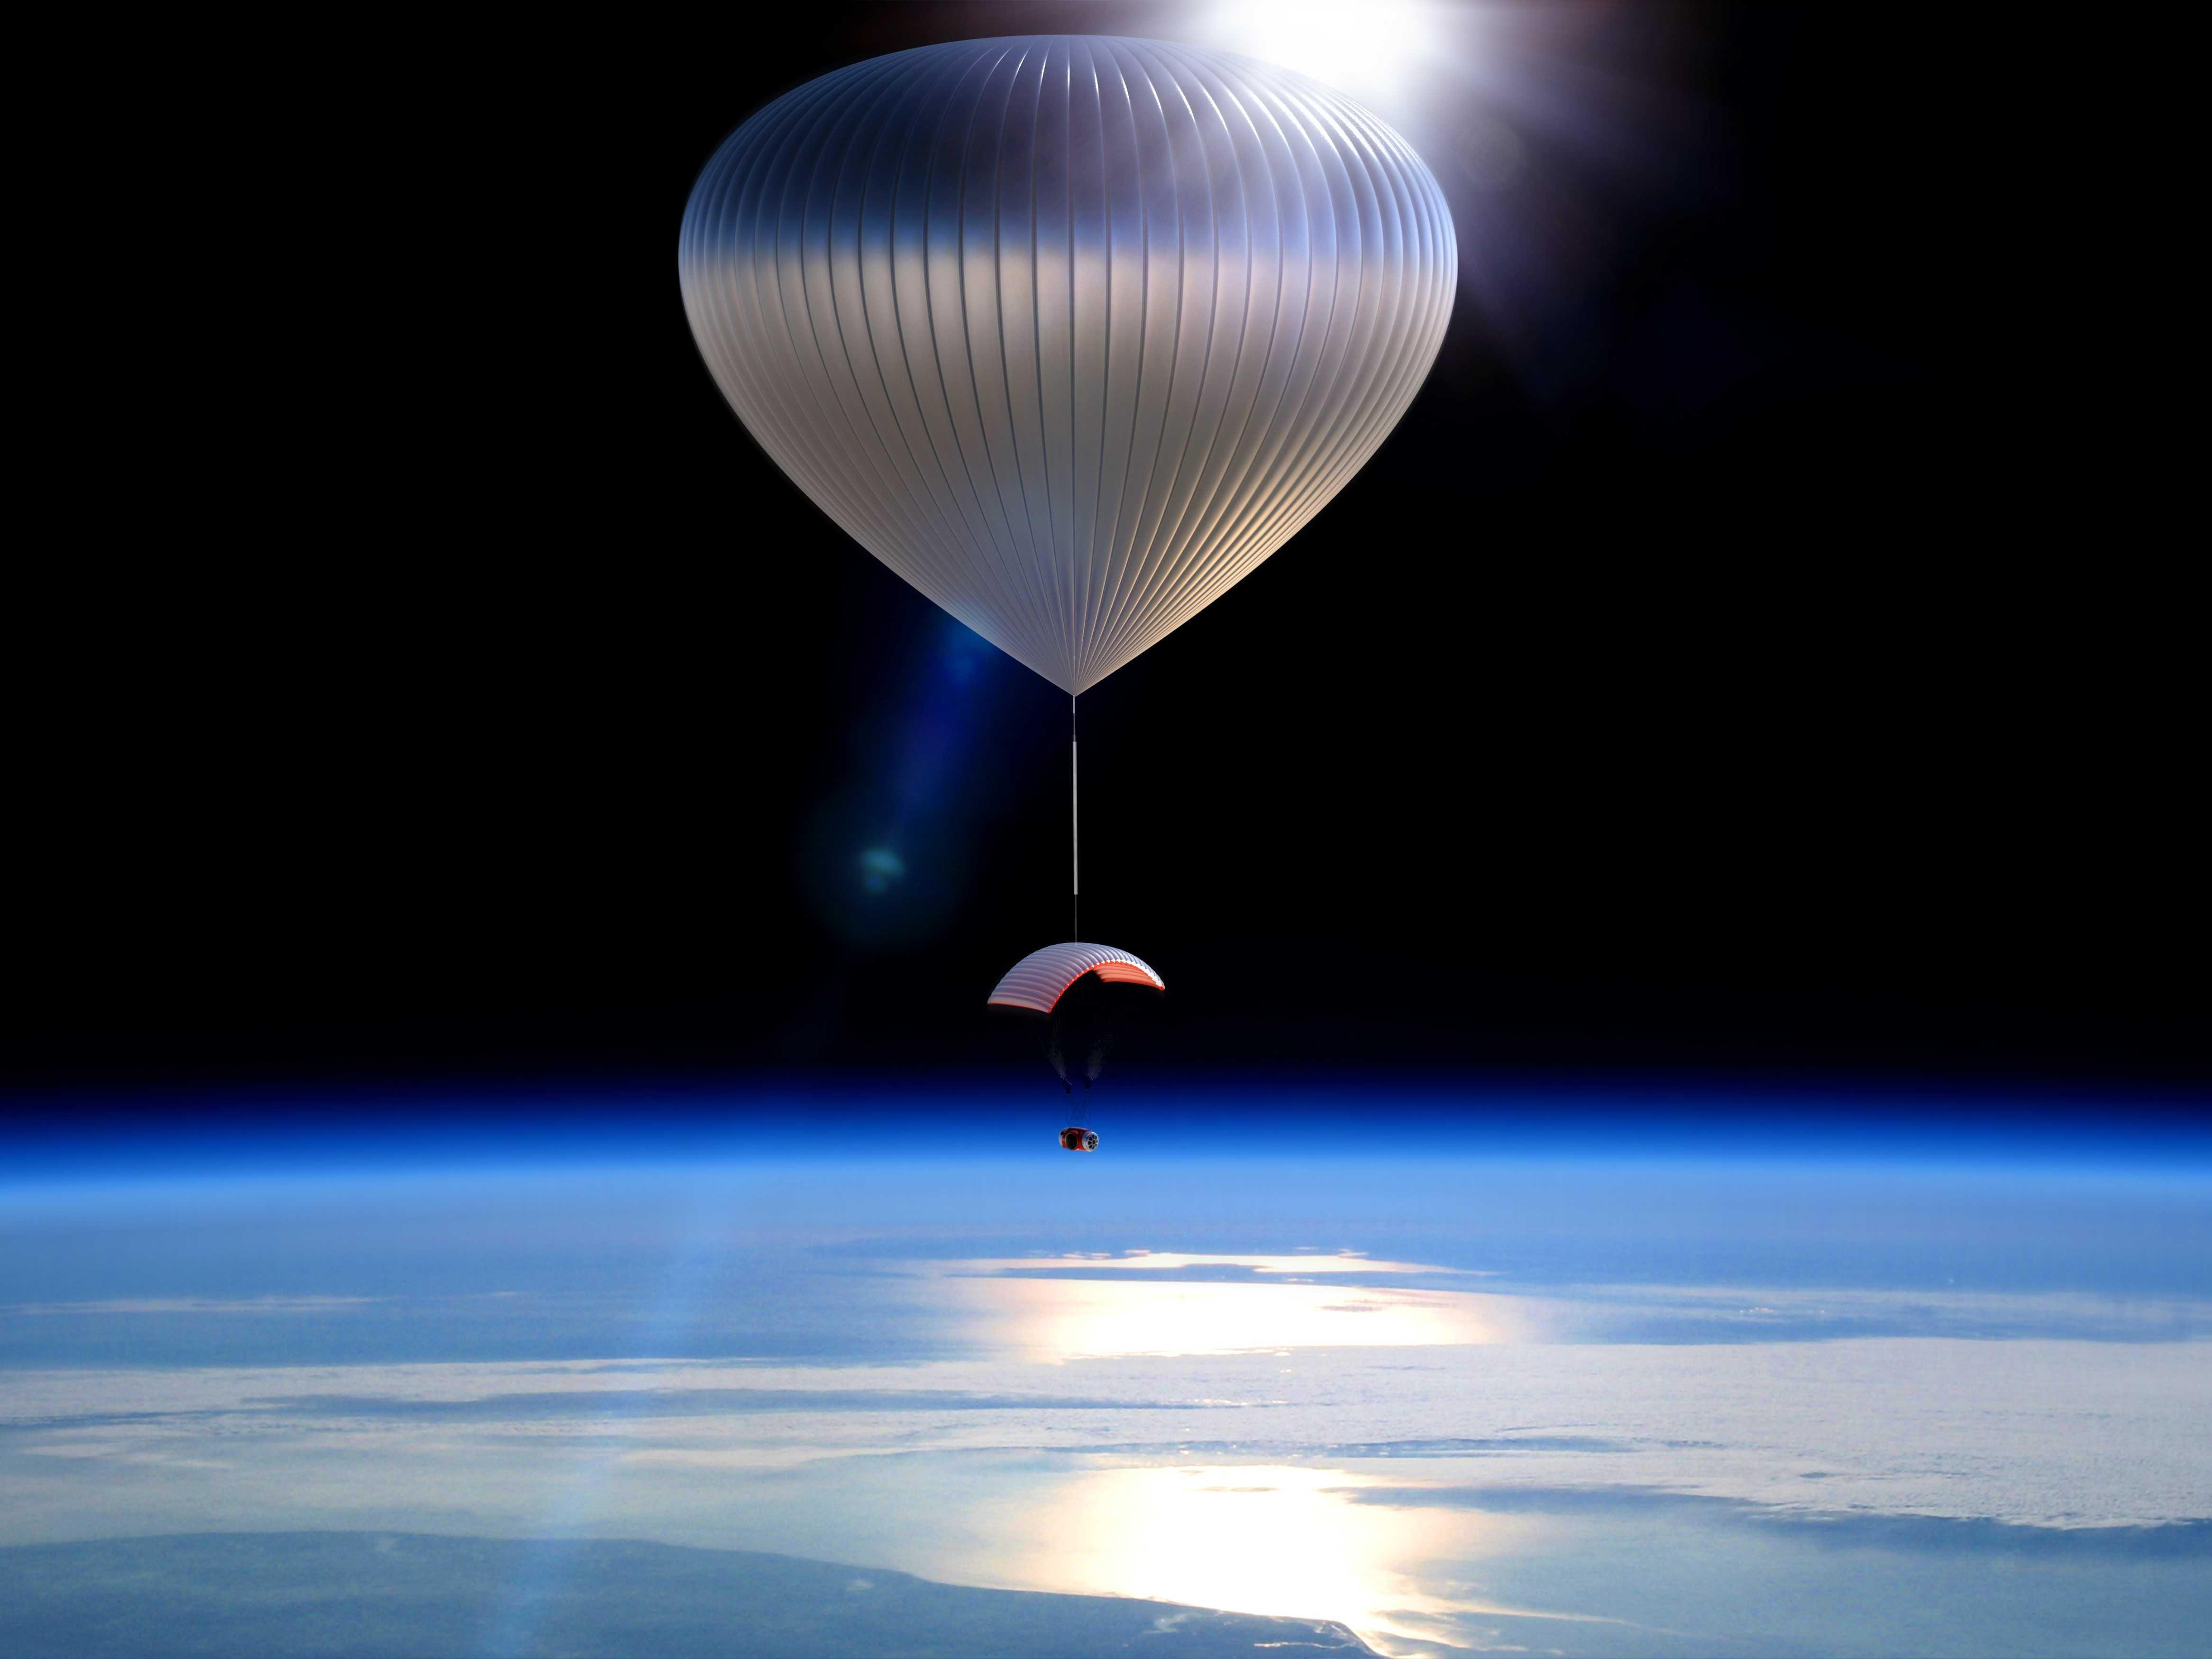 'Edge of space' tourism company World View just flew a balloon two times higher than we ever have before